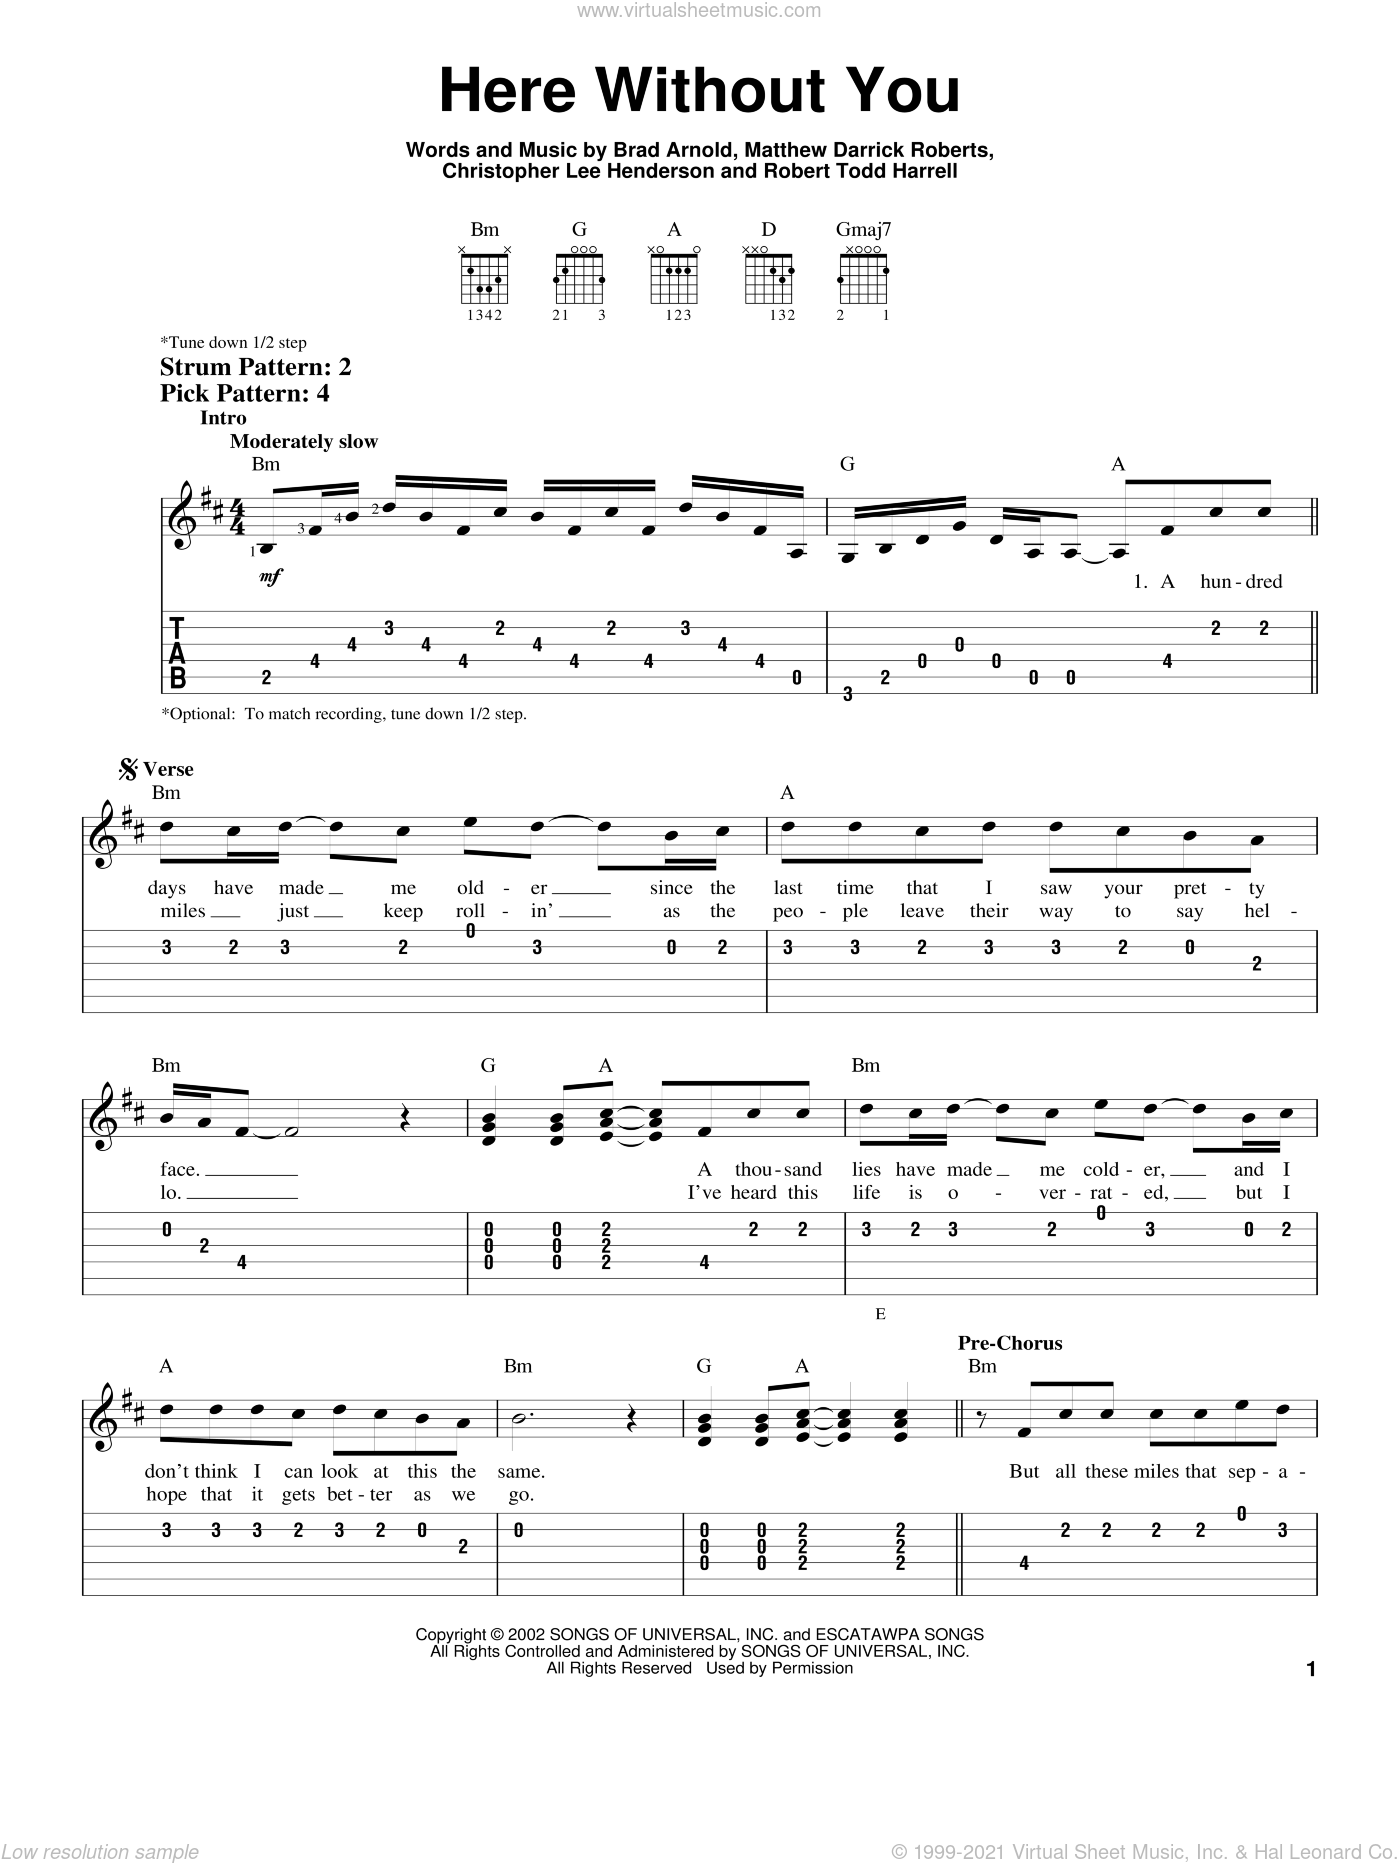 Here Without You sheet music for guitar solo (easy tablature) by 3 Doors Down, Brad Arnold, Christopher Henderson, Matt Roberts and Robert Harrell, easy guitar (easy tablature)